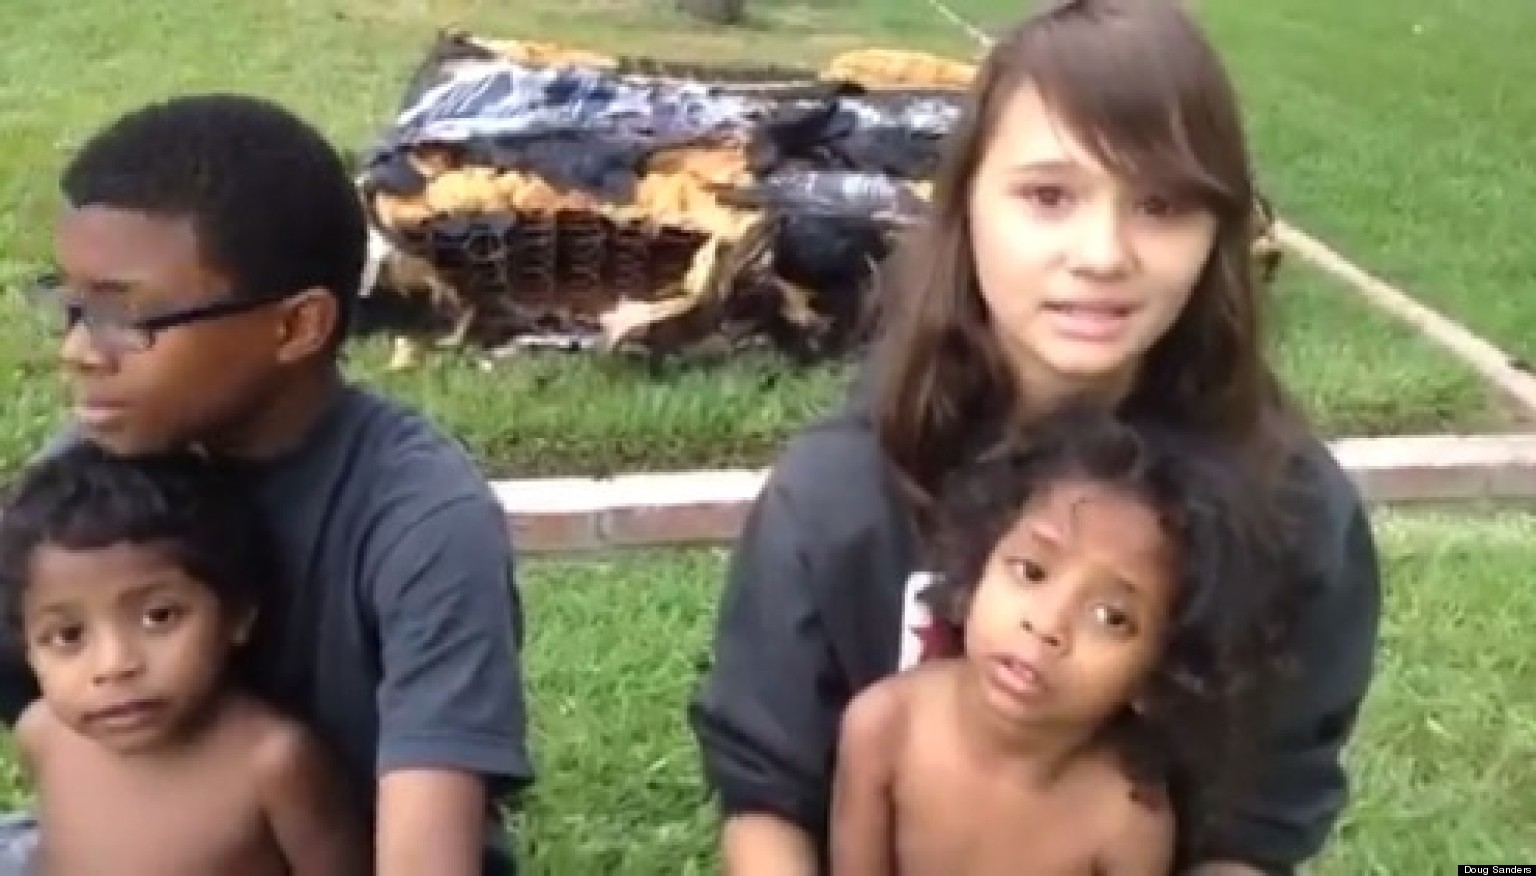 Teen Girl's Amazing Moment Of Valor During Home Fire